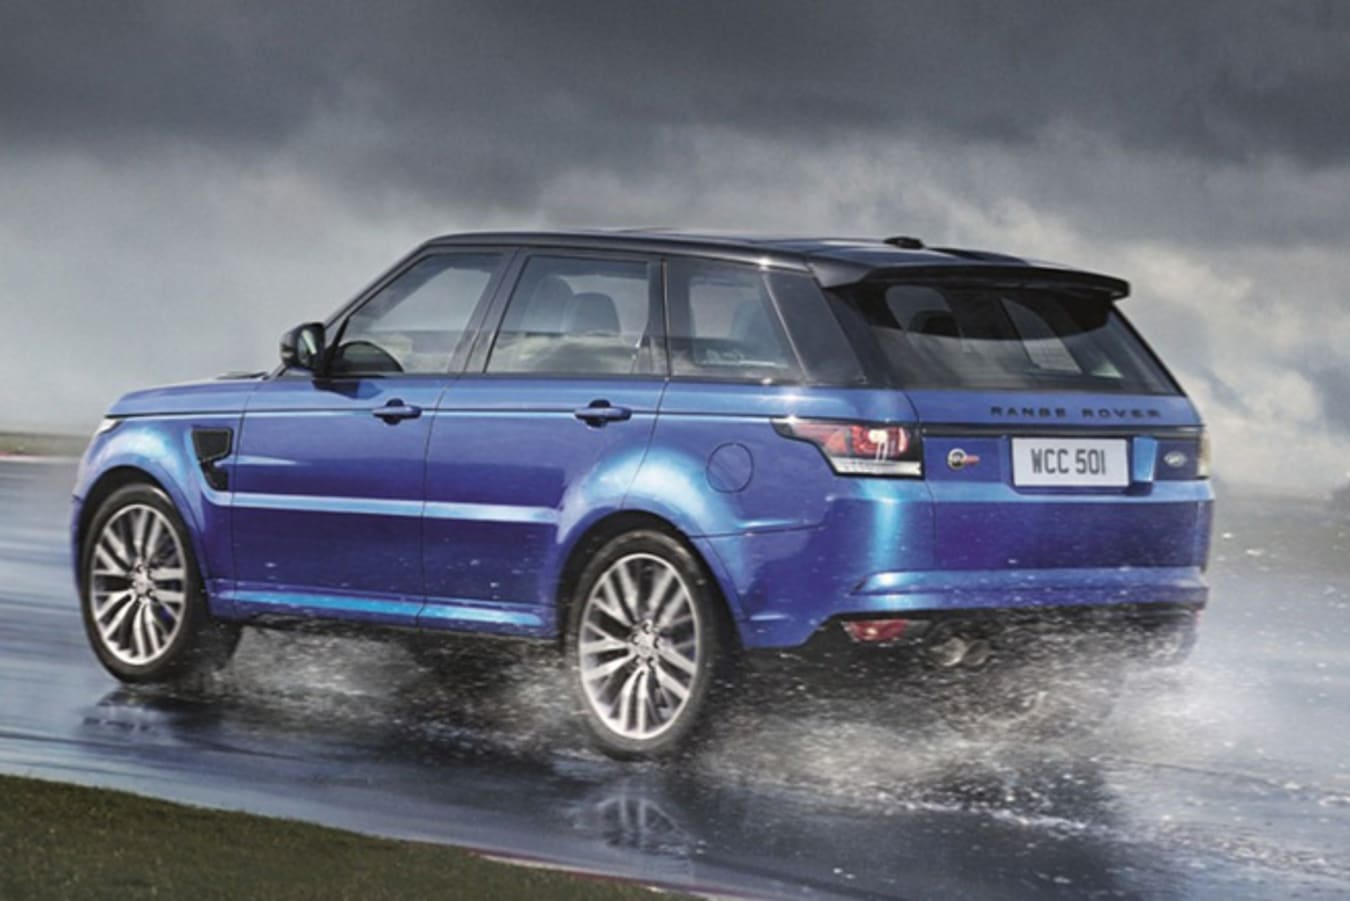 Renault Rover Sport SVR rear driving on wet road